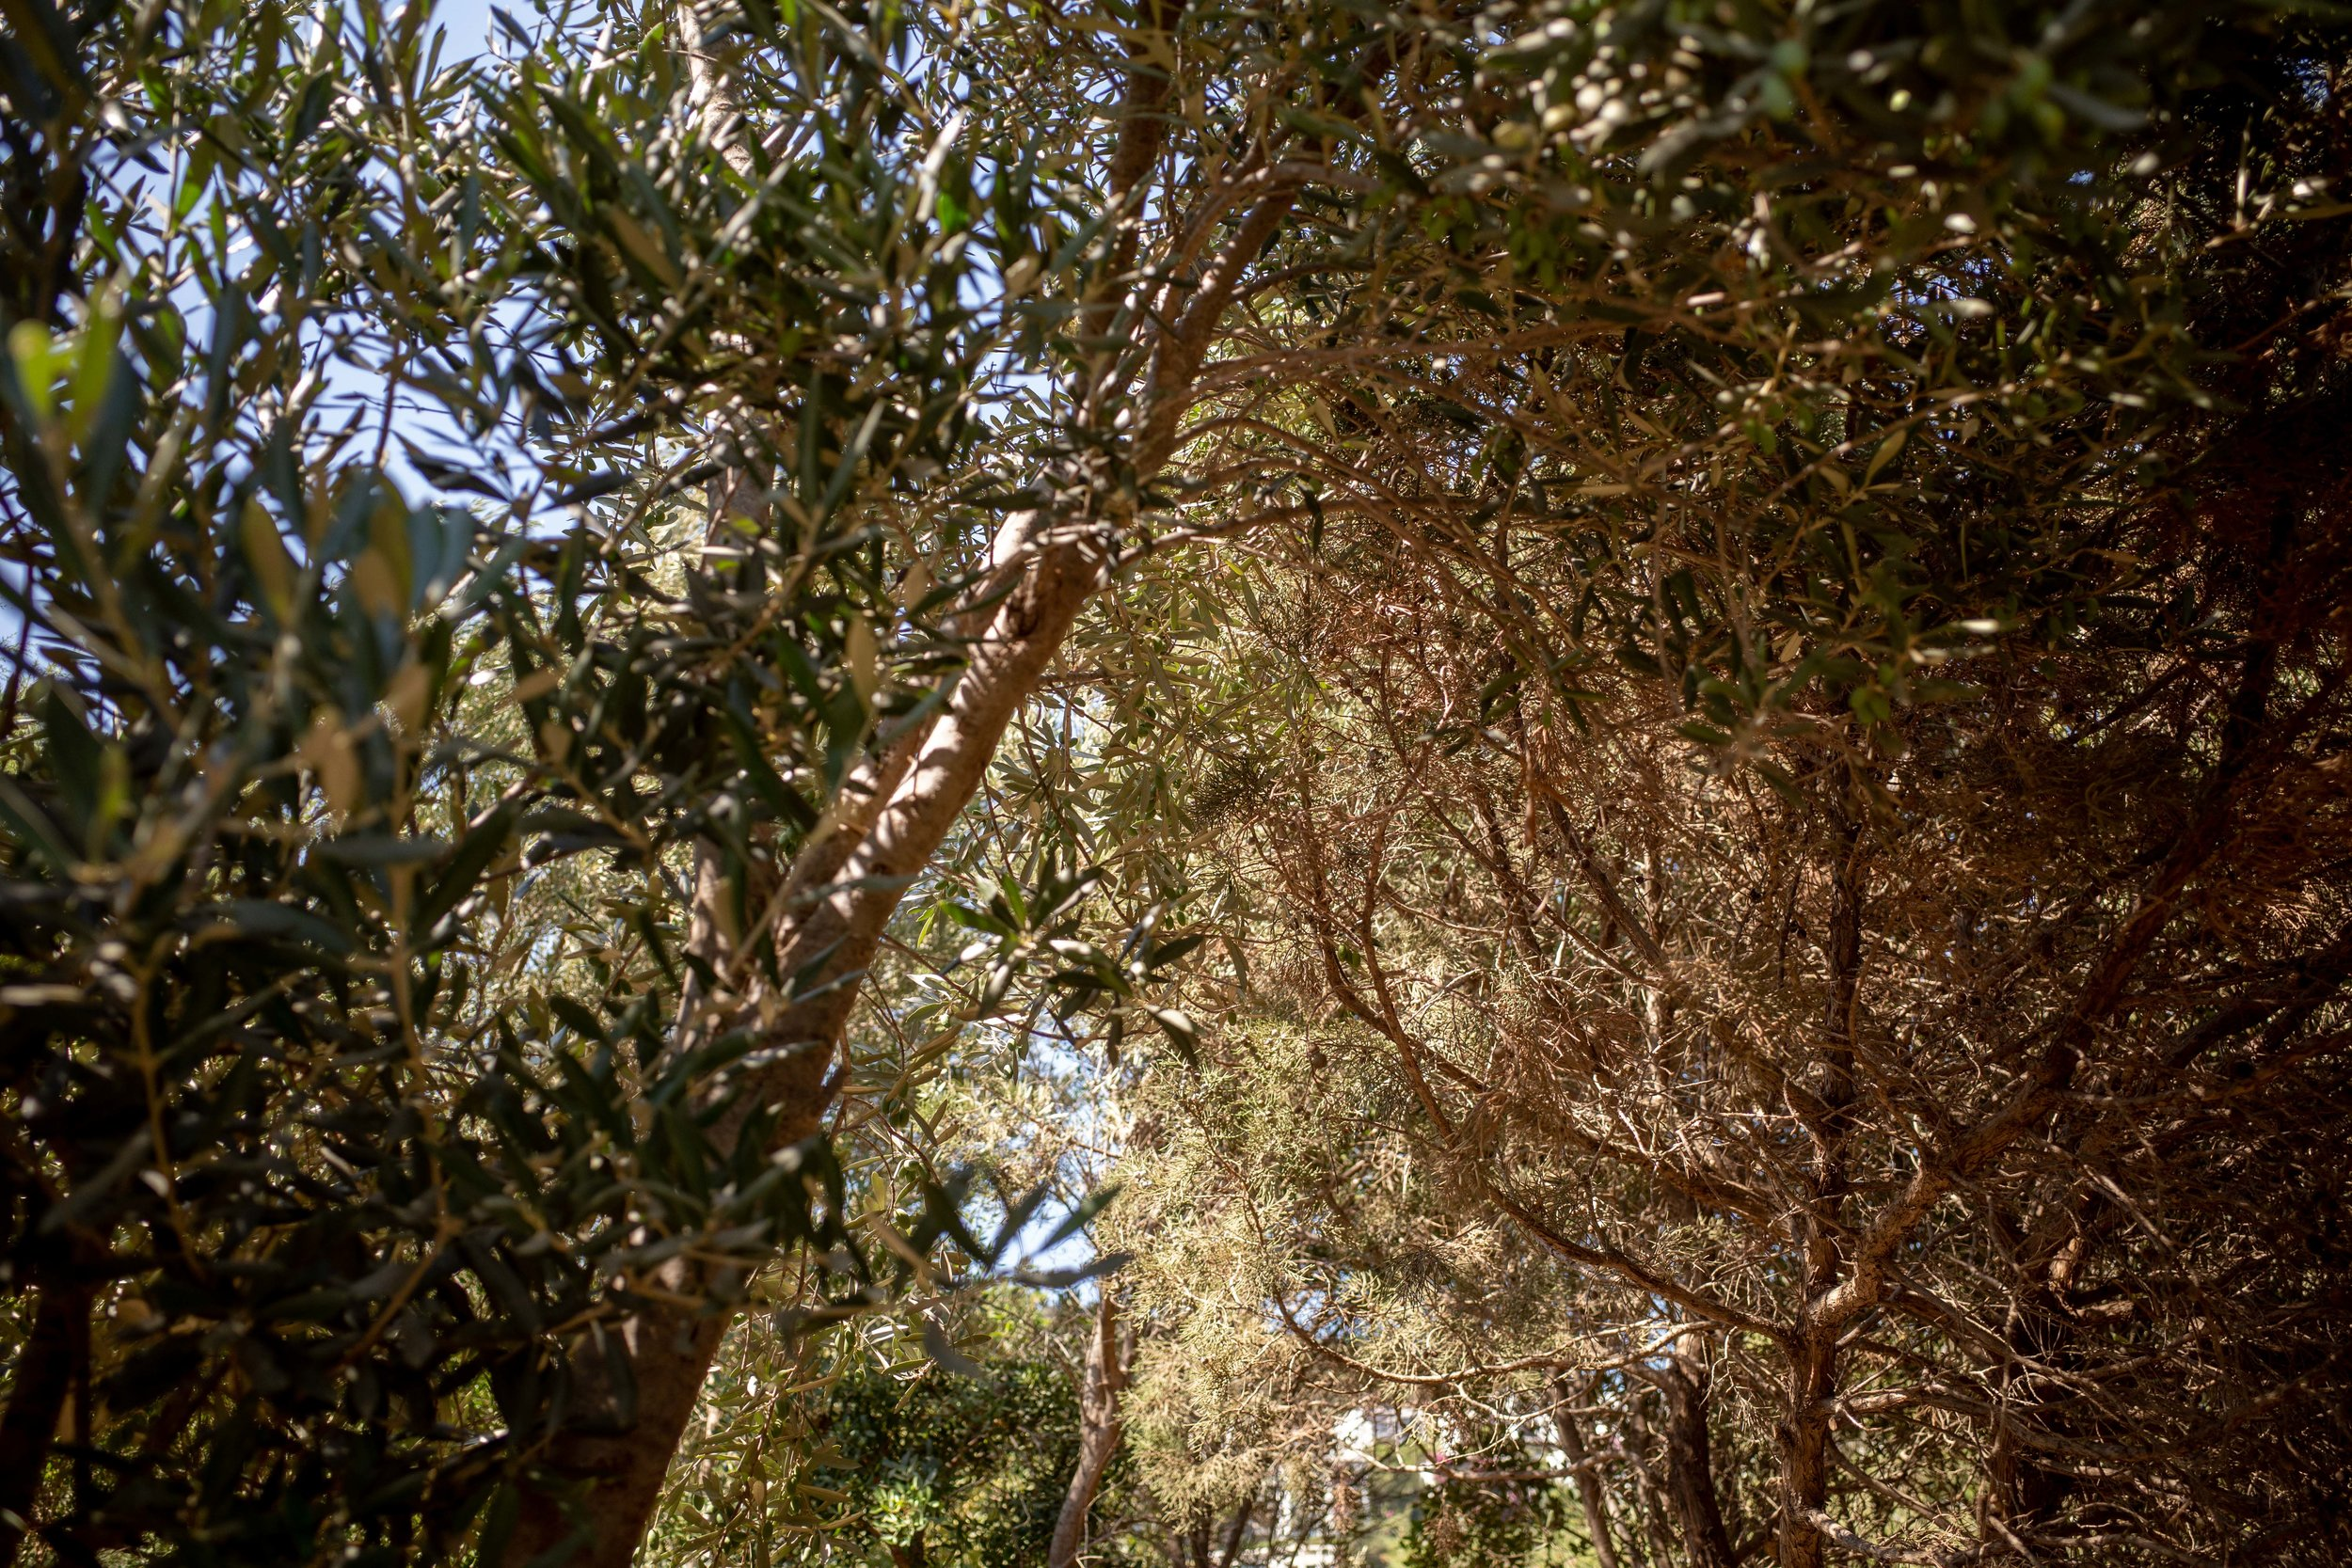 Olive groves everywhere you look.